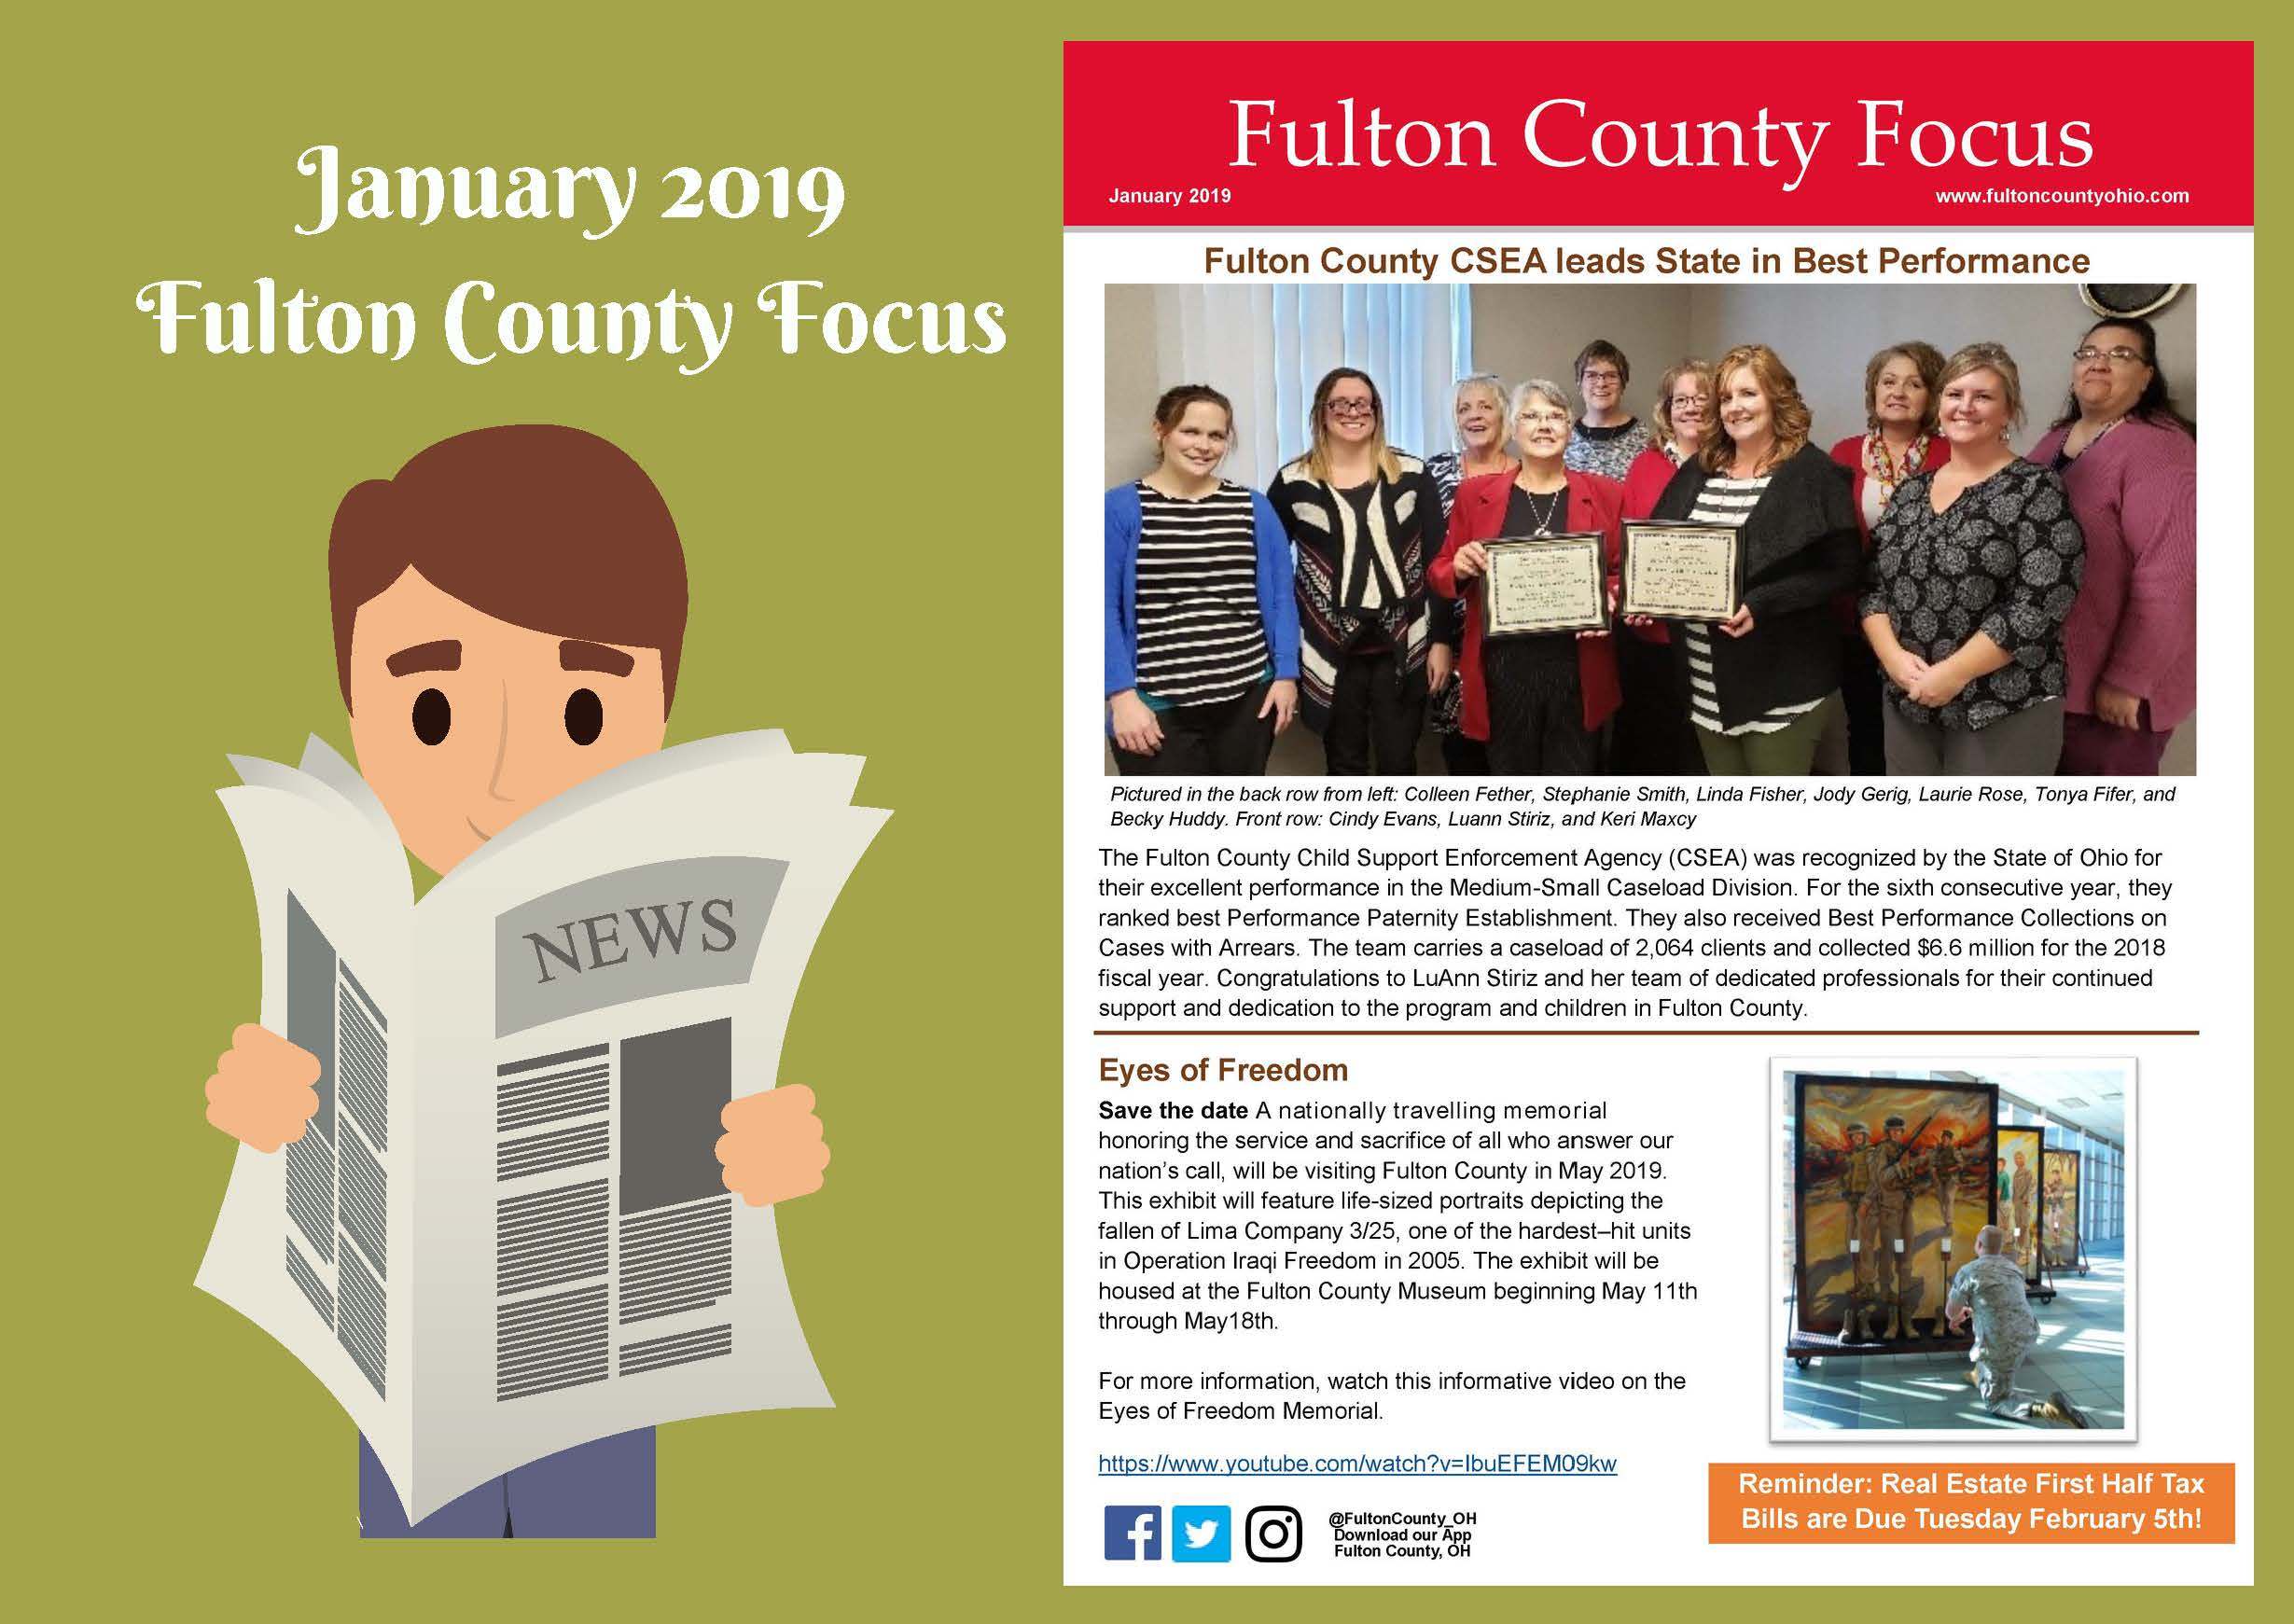 Website images promoting the Fulton County Focus January 2019 Edition